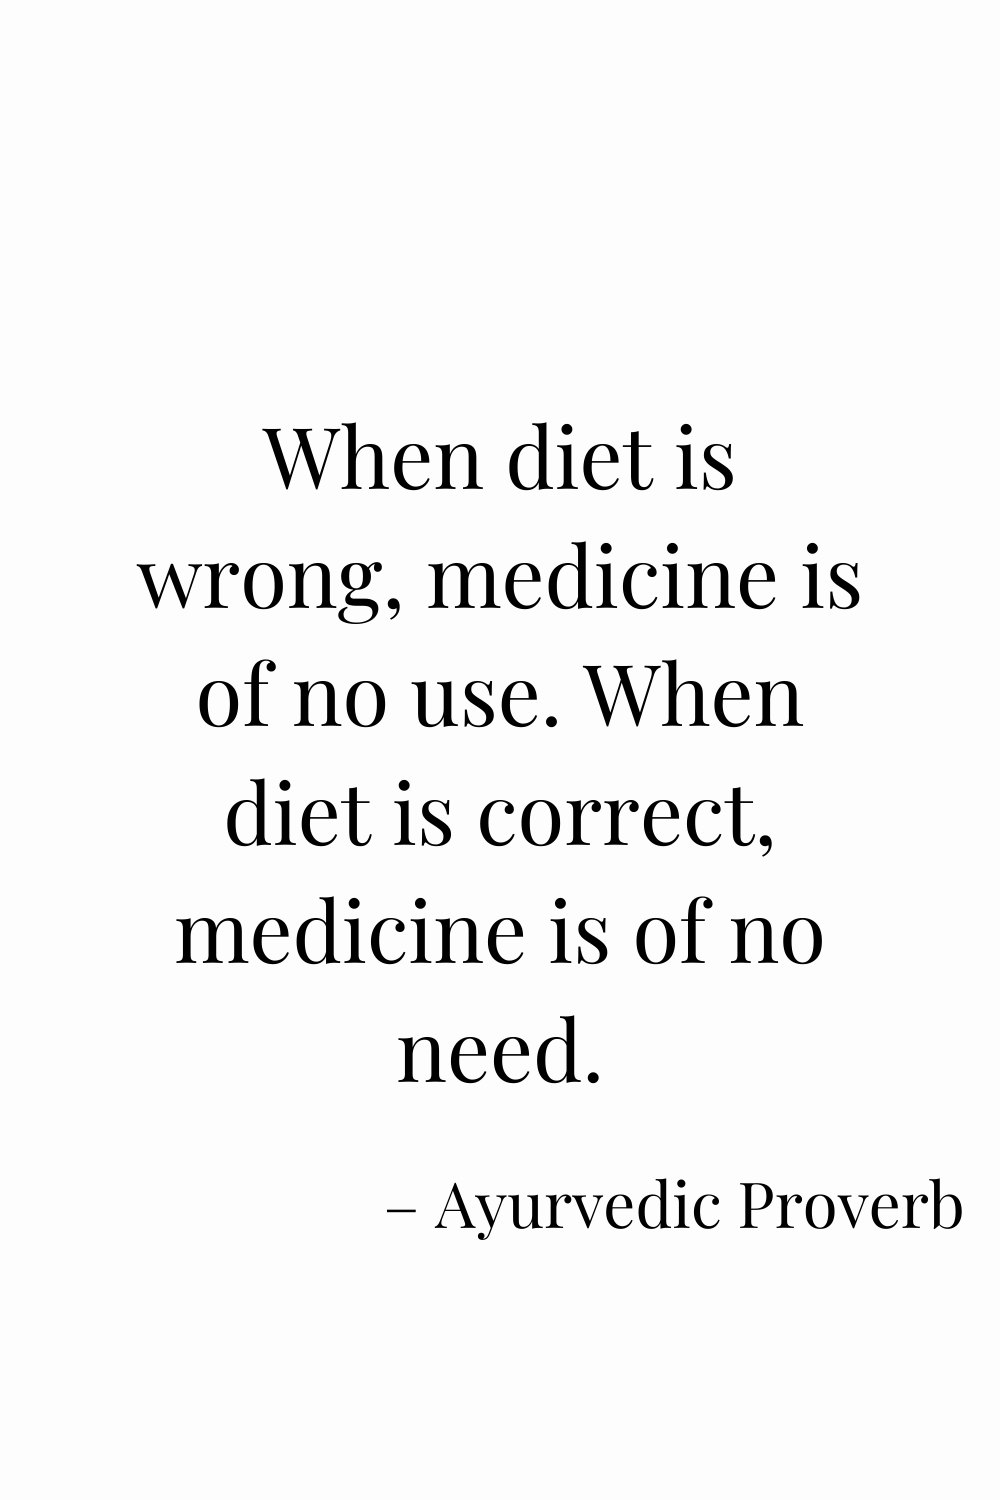 When diet is wrong, medicine is of no use. When diet is correct, medicine is of no need. -– Ayurvedic Proverb Quotes about healthy food